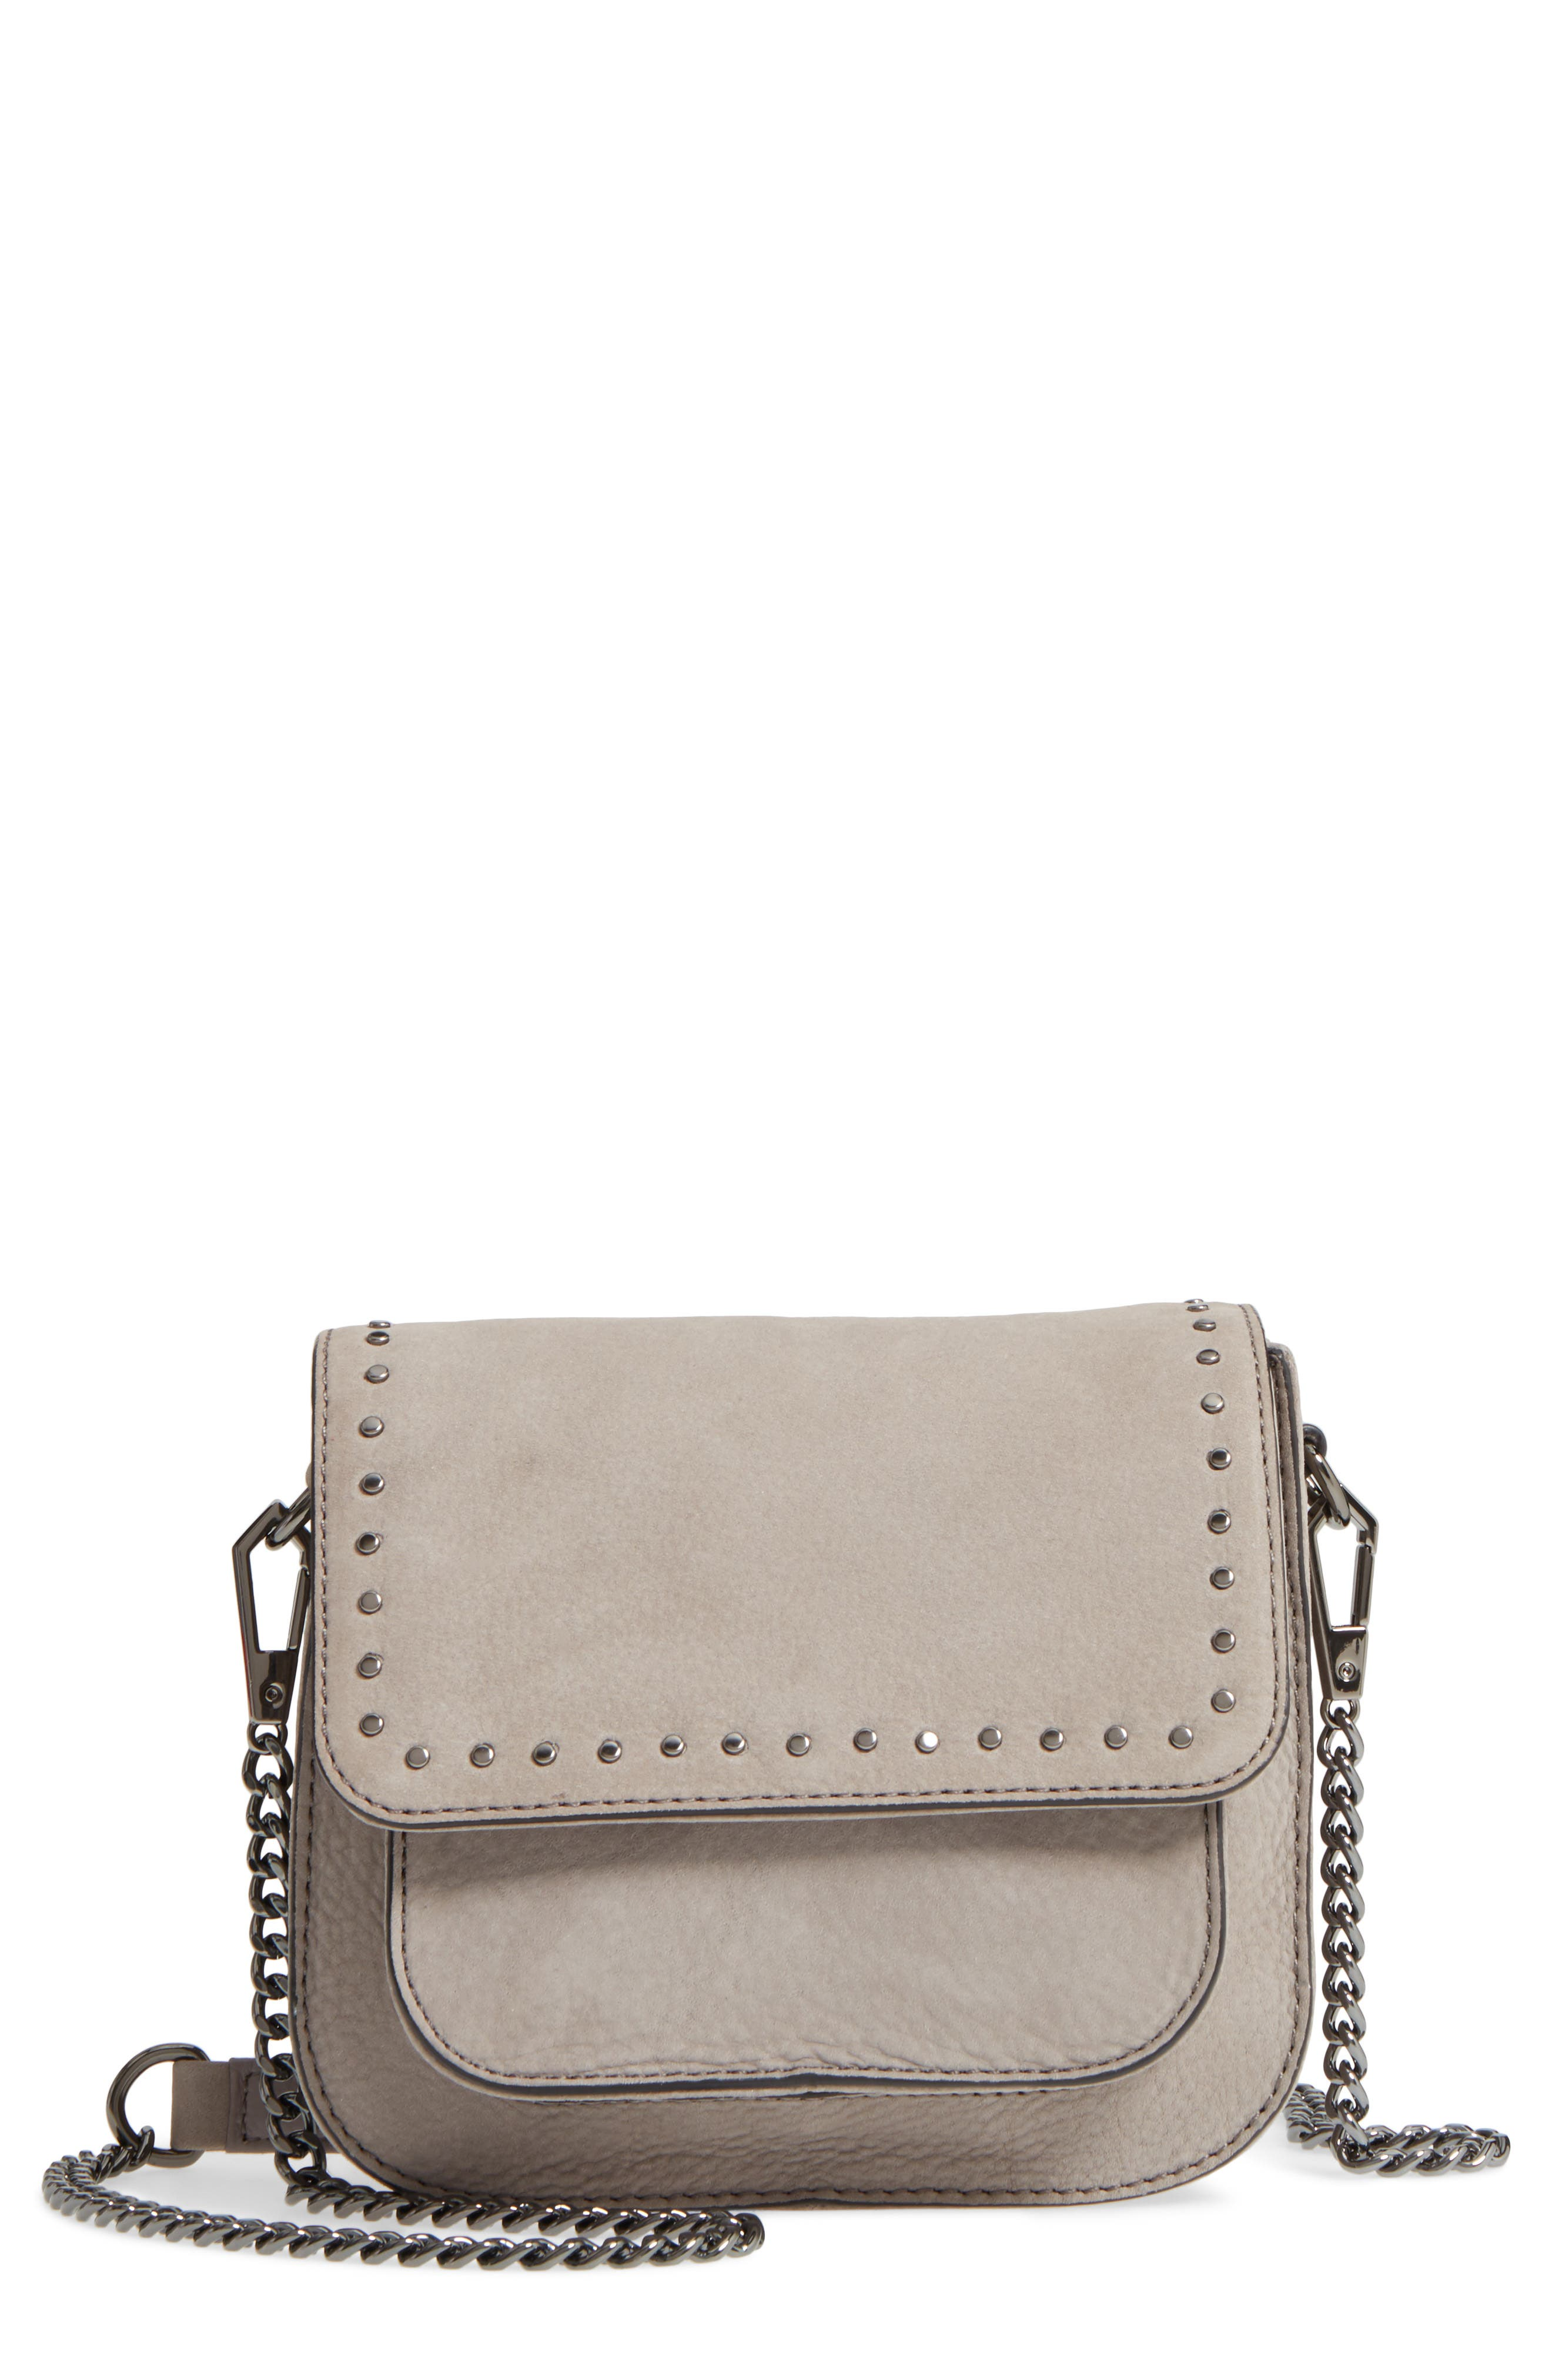 Rebecca Minkoff Small Moonwalking Saddle Bag